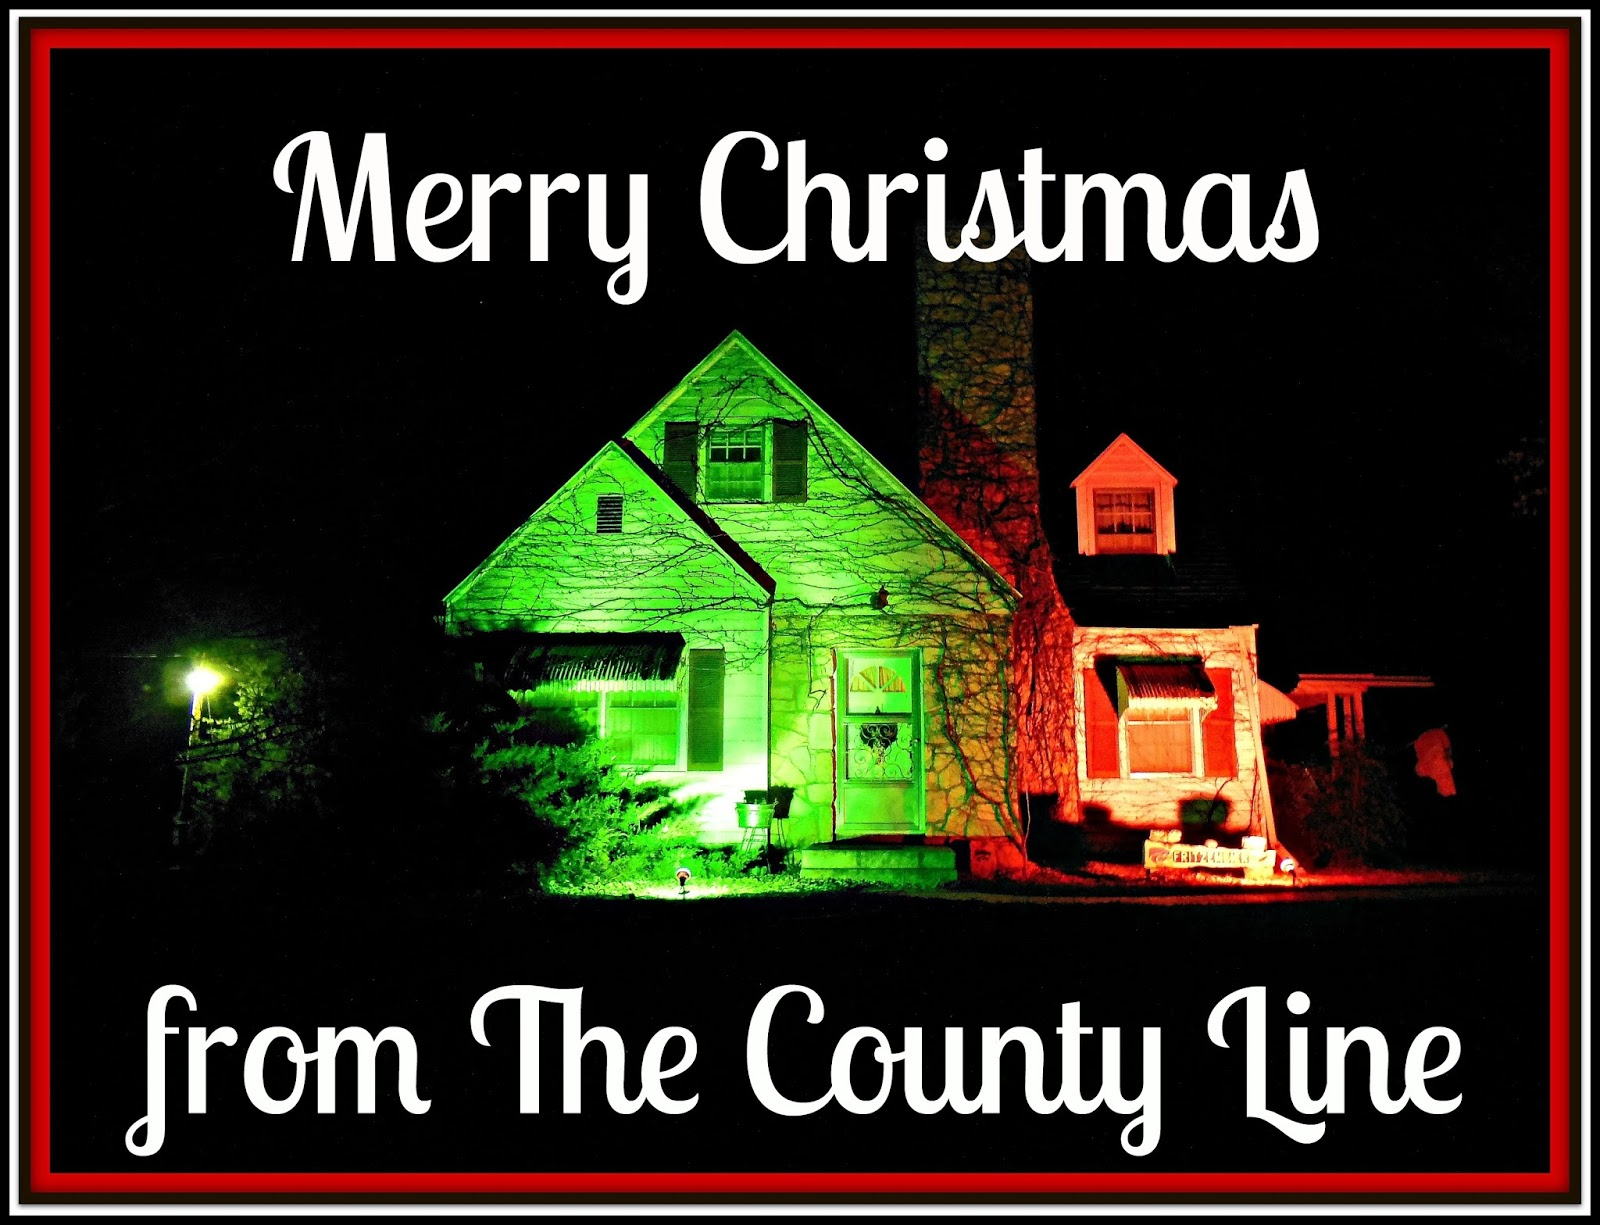 Christmas Decorating With Floodlights : Kim s county line how a decapitation changed christmas